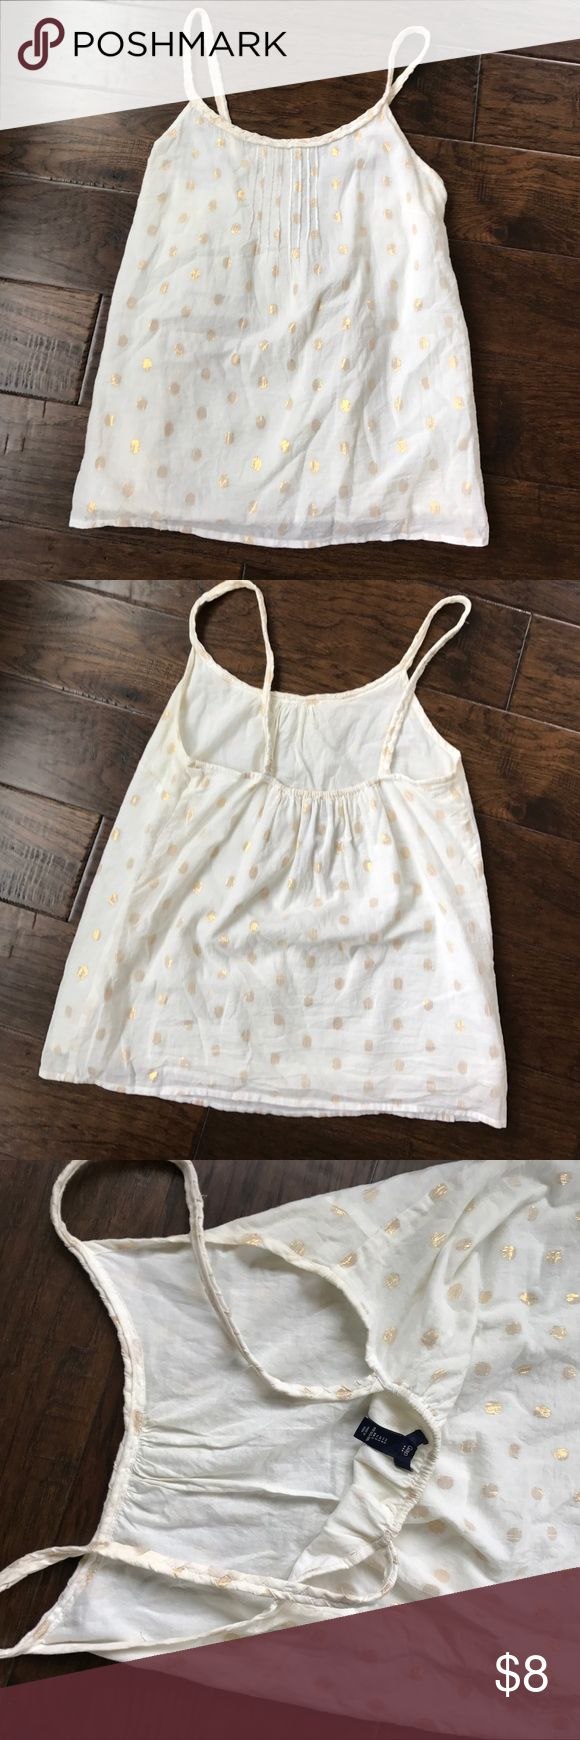 GAP outlet hold dot tank top. Gold dot tank top from gap factory. Only worn once. Extremely cute. GAP Tops Tank Tops